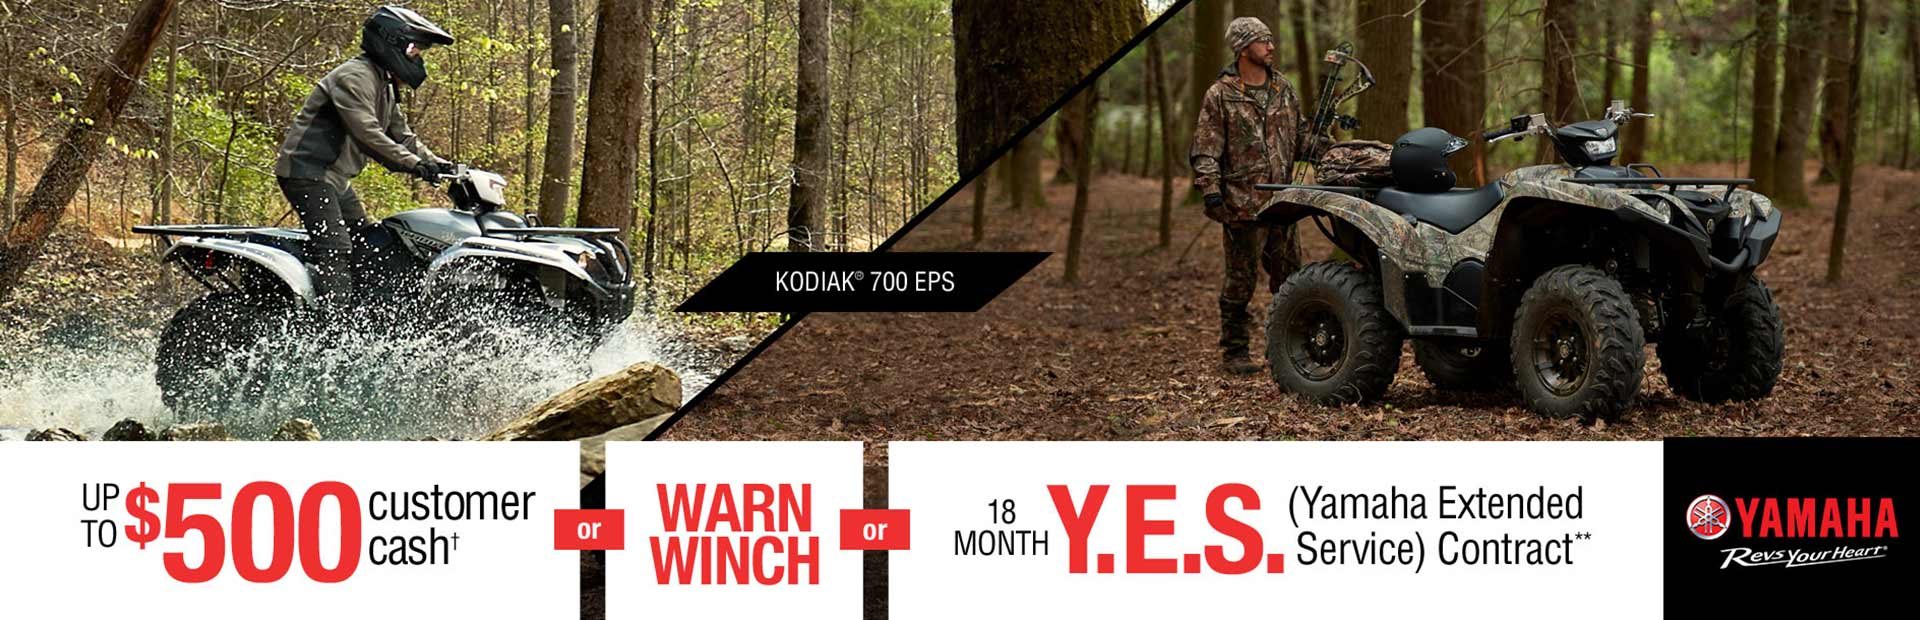 Yamaha: Customer Cash, Free Warn® Winch, 18 Month Y.E.S.